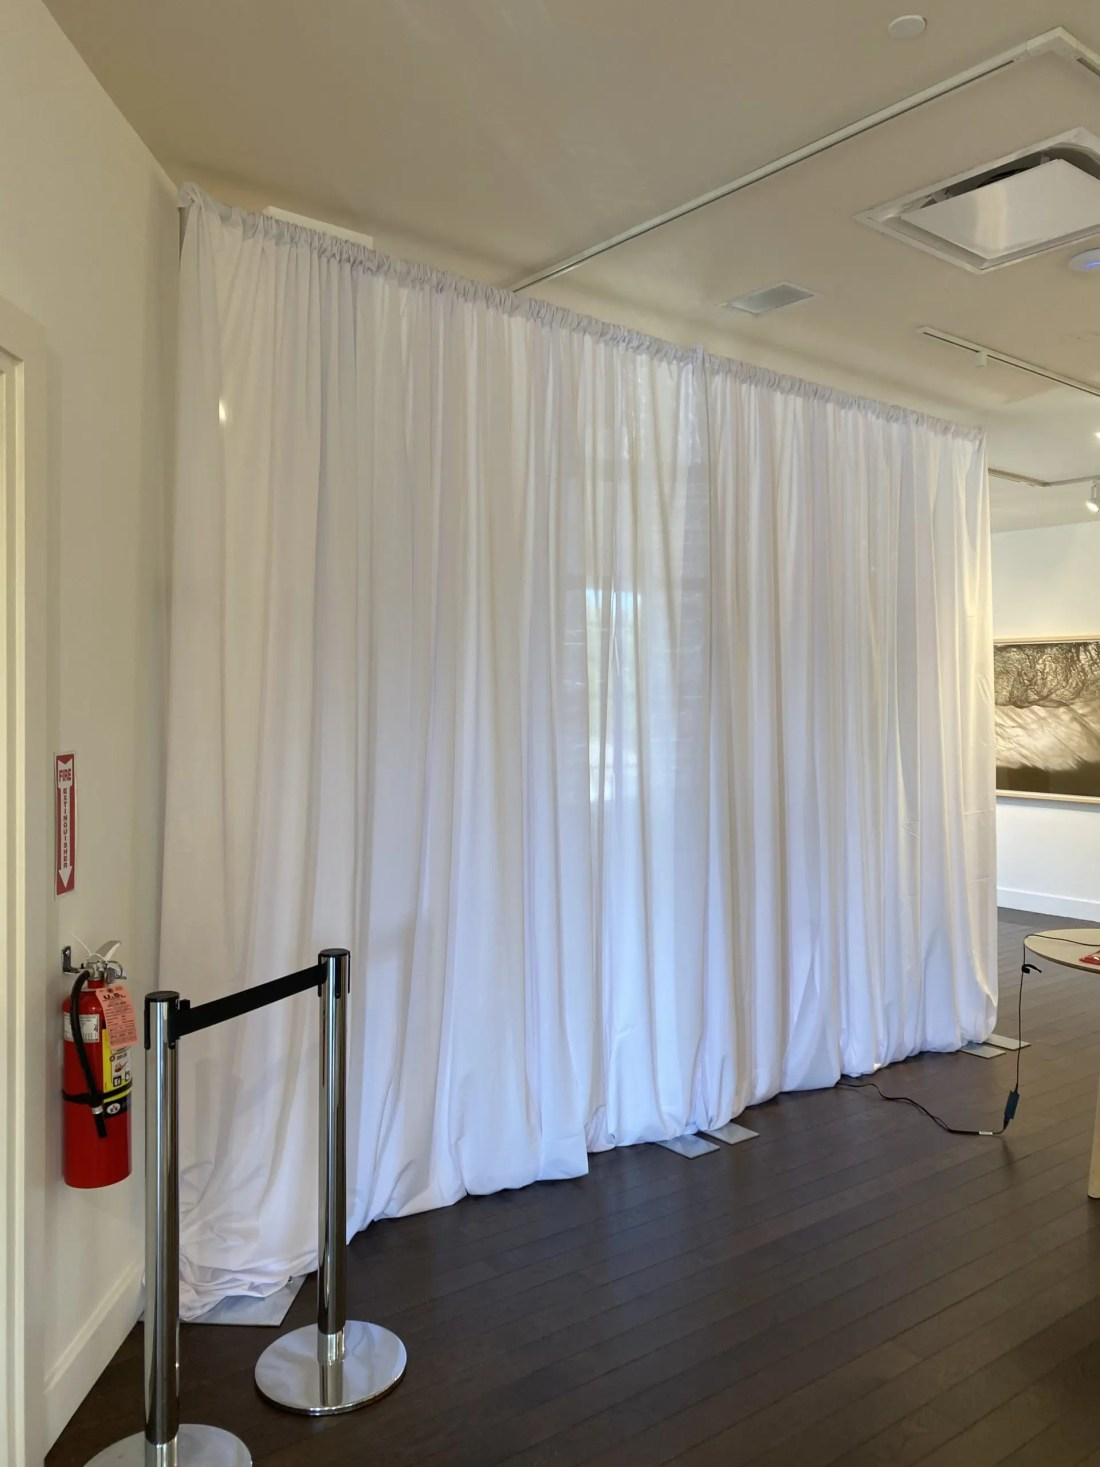 pipe and drape in museum for room divider